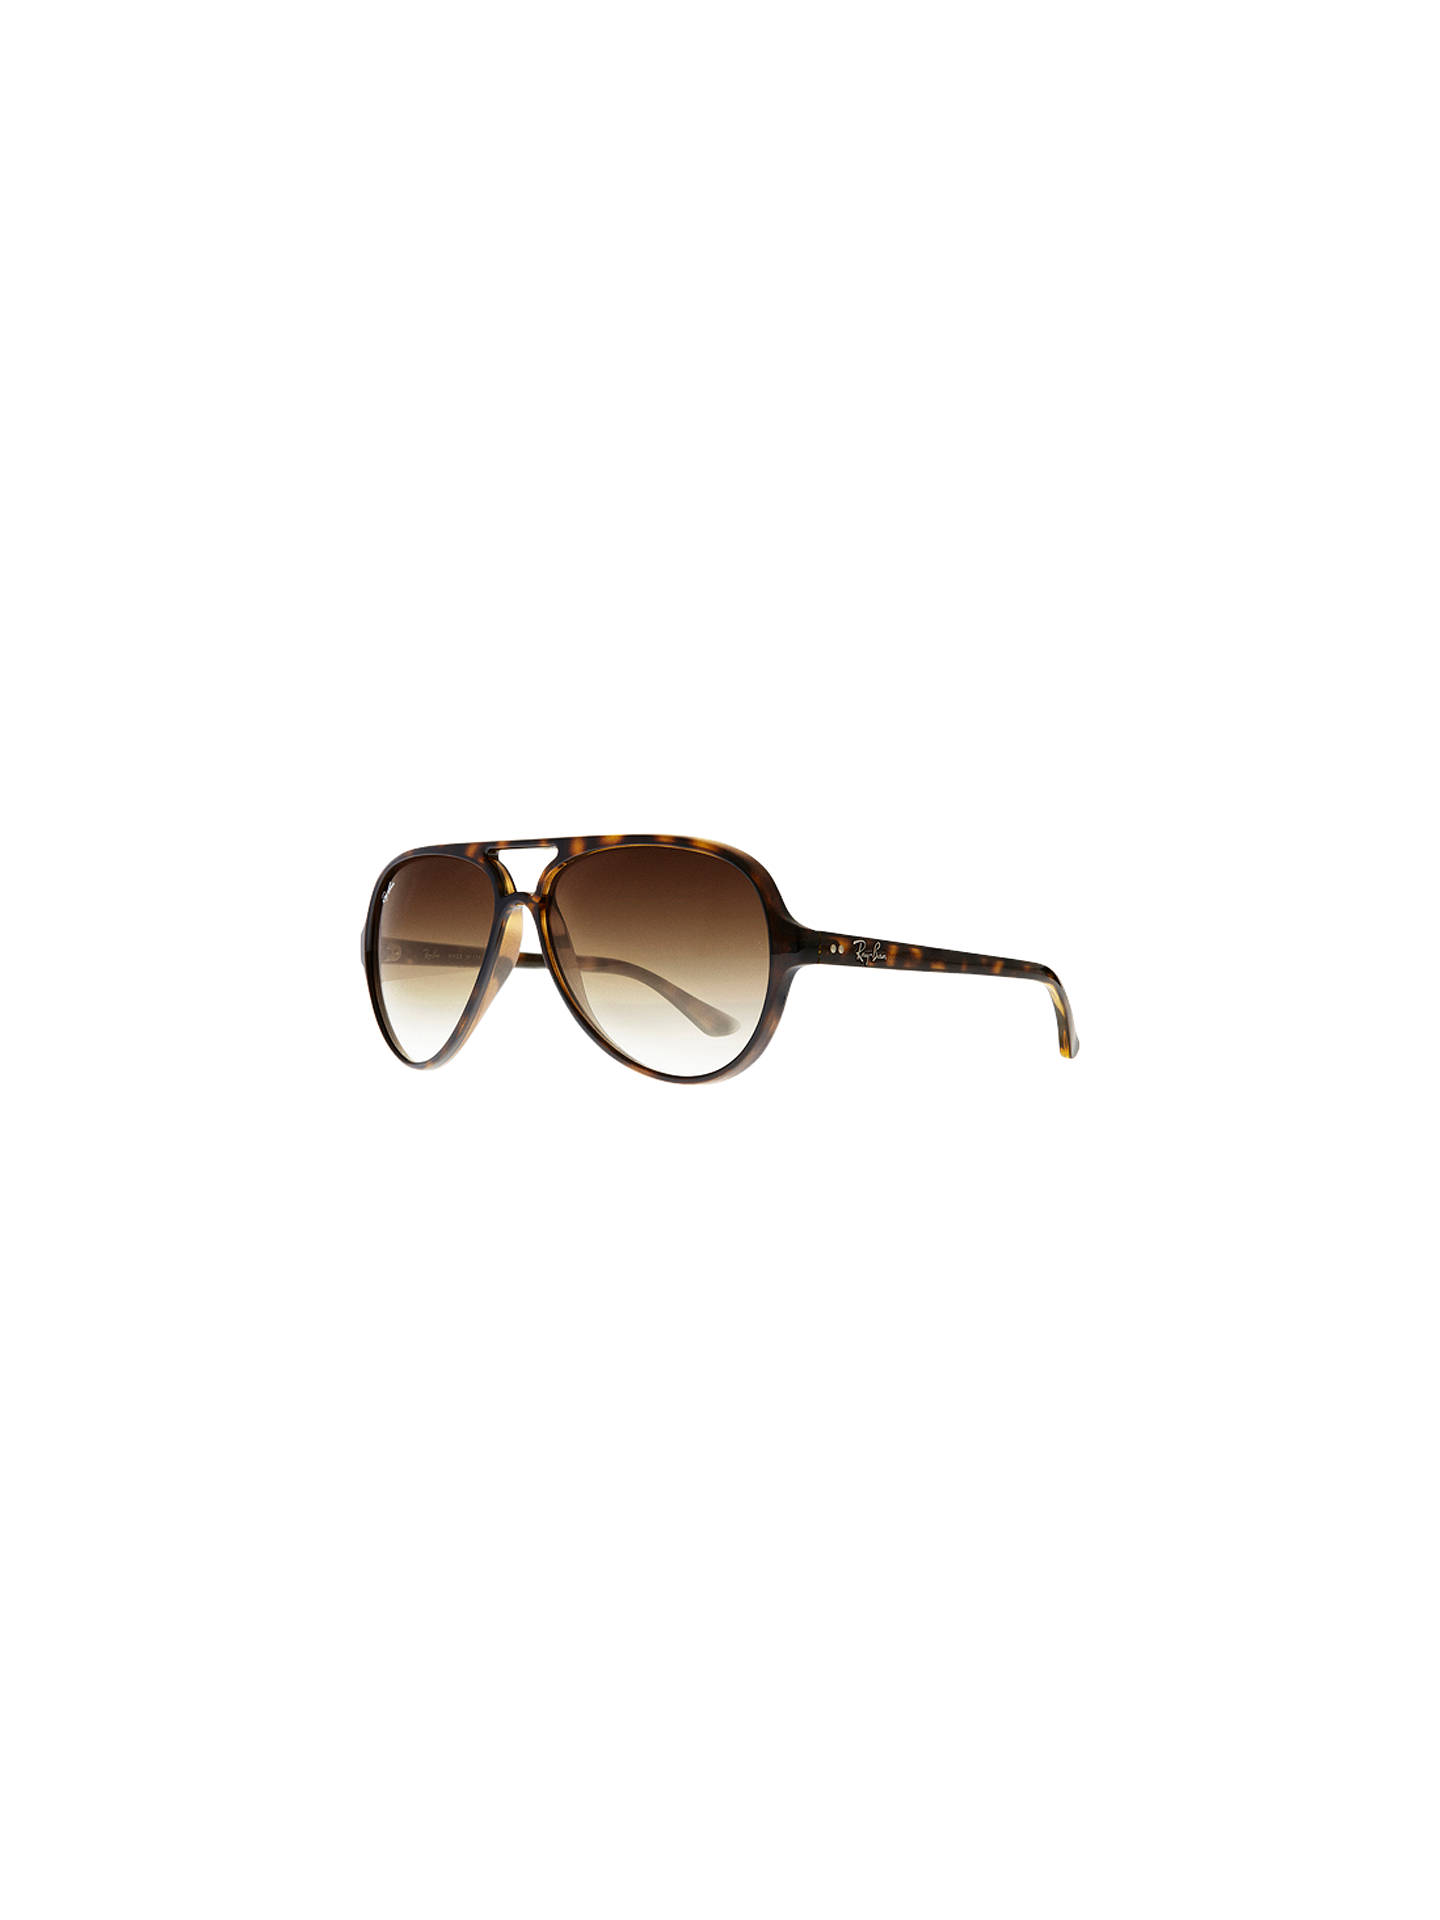 7ce2f3d9bb8f2b BuyRay-Ban RB4125 Cats 5000 Aviator Sunglasses, Light Havana Online at  johnlewis.com ...